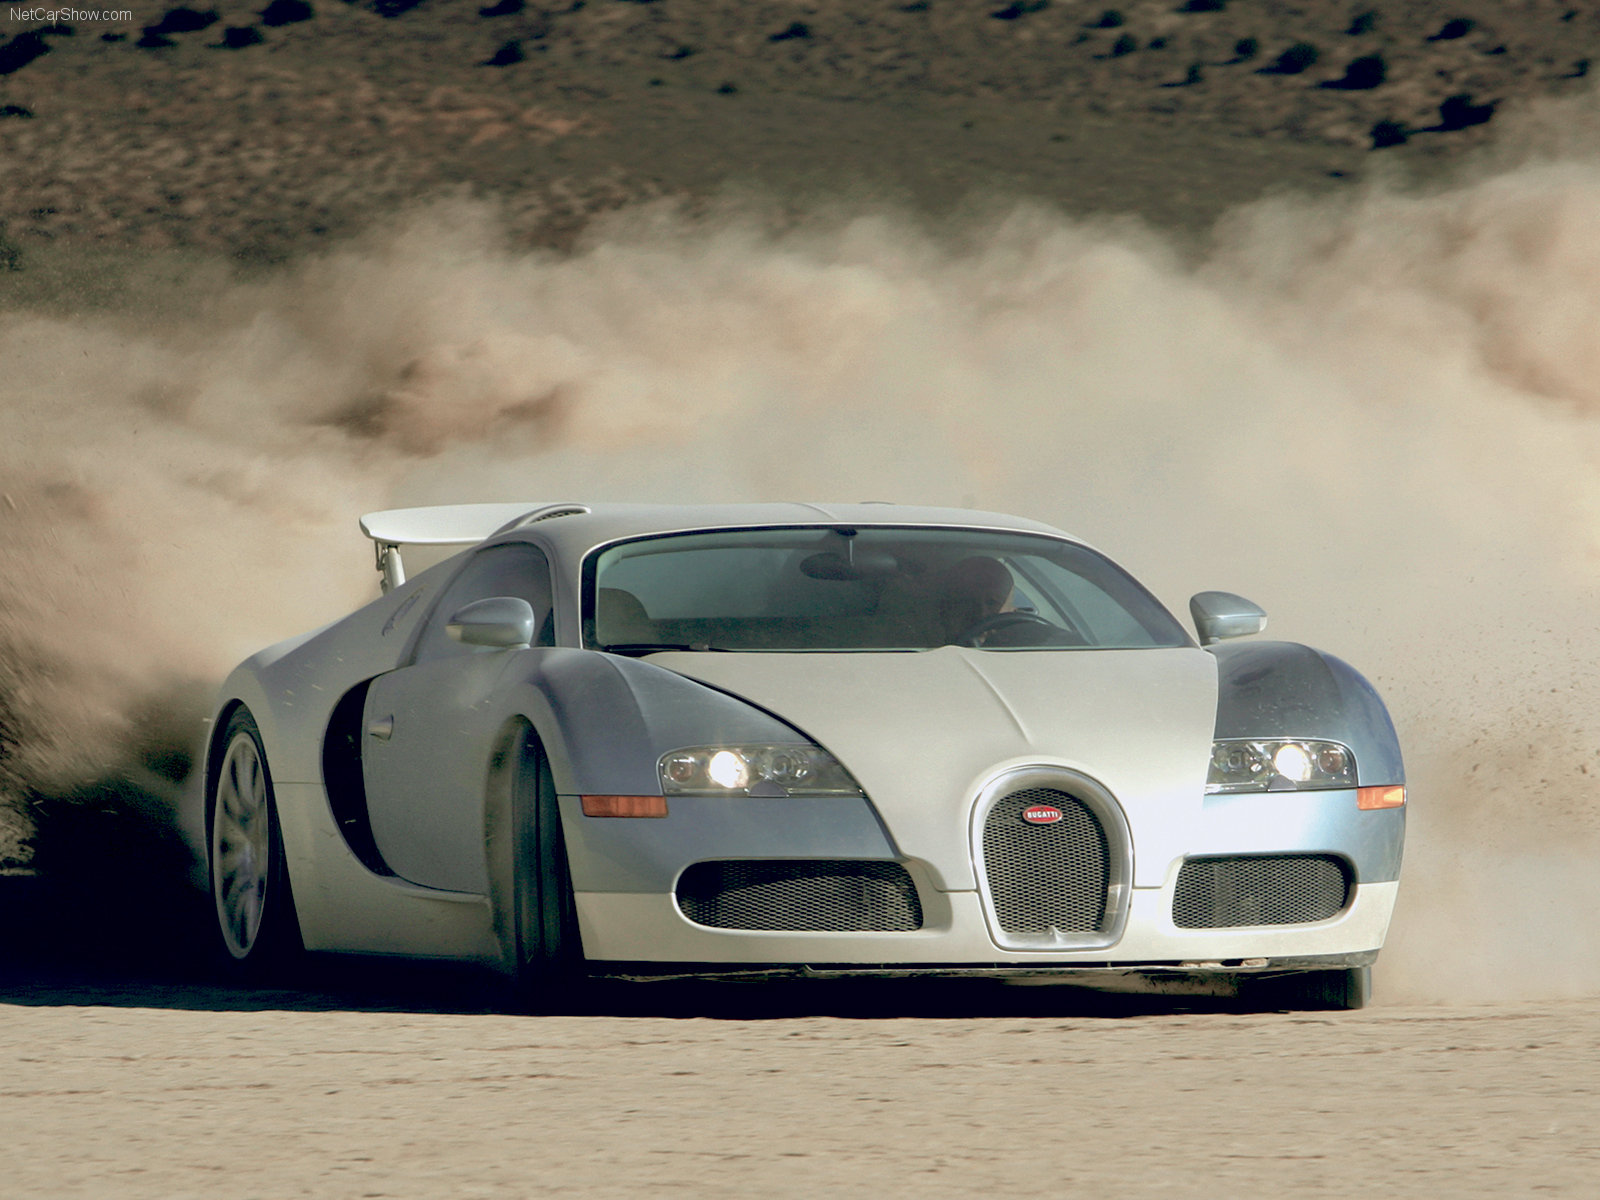 bugatti veyron hd wallpapers free hd wallpapers. Black Bedroom Furniture Sets. Home Design Ideas